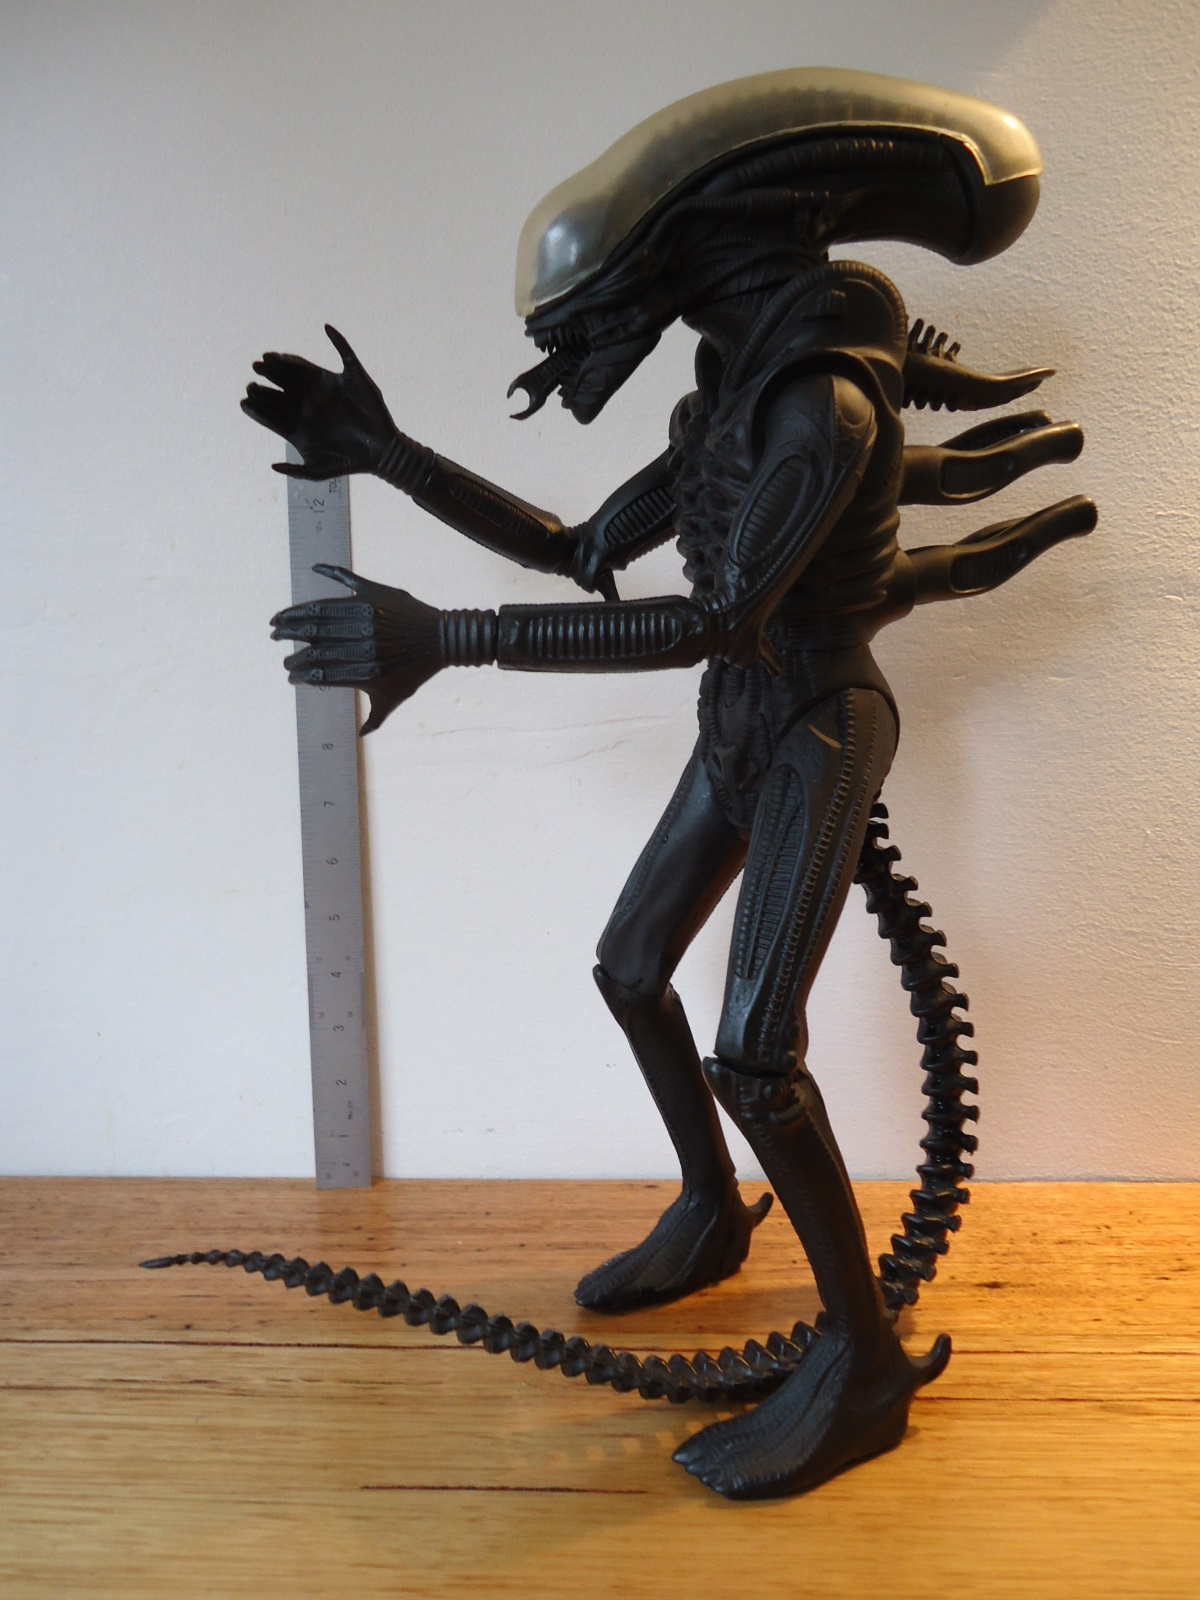 The 16 3/4 inch tall 1991 Halcyon ALIEN Model kit.